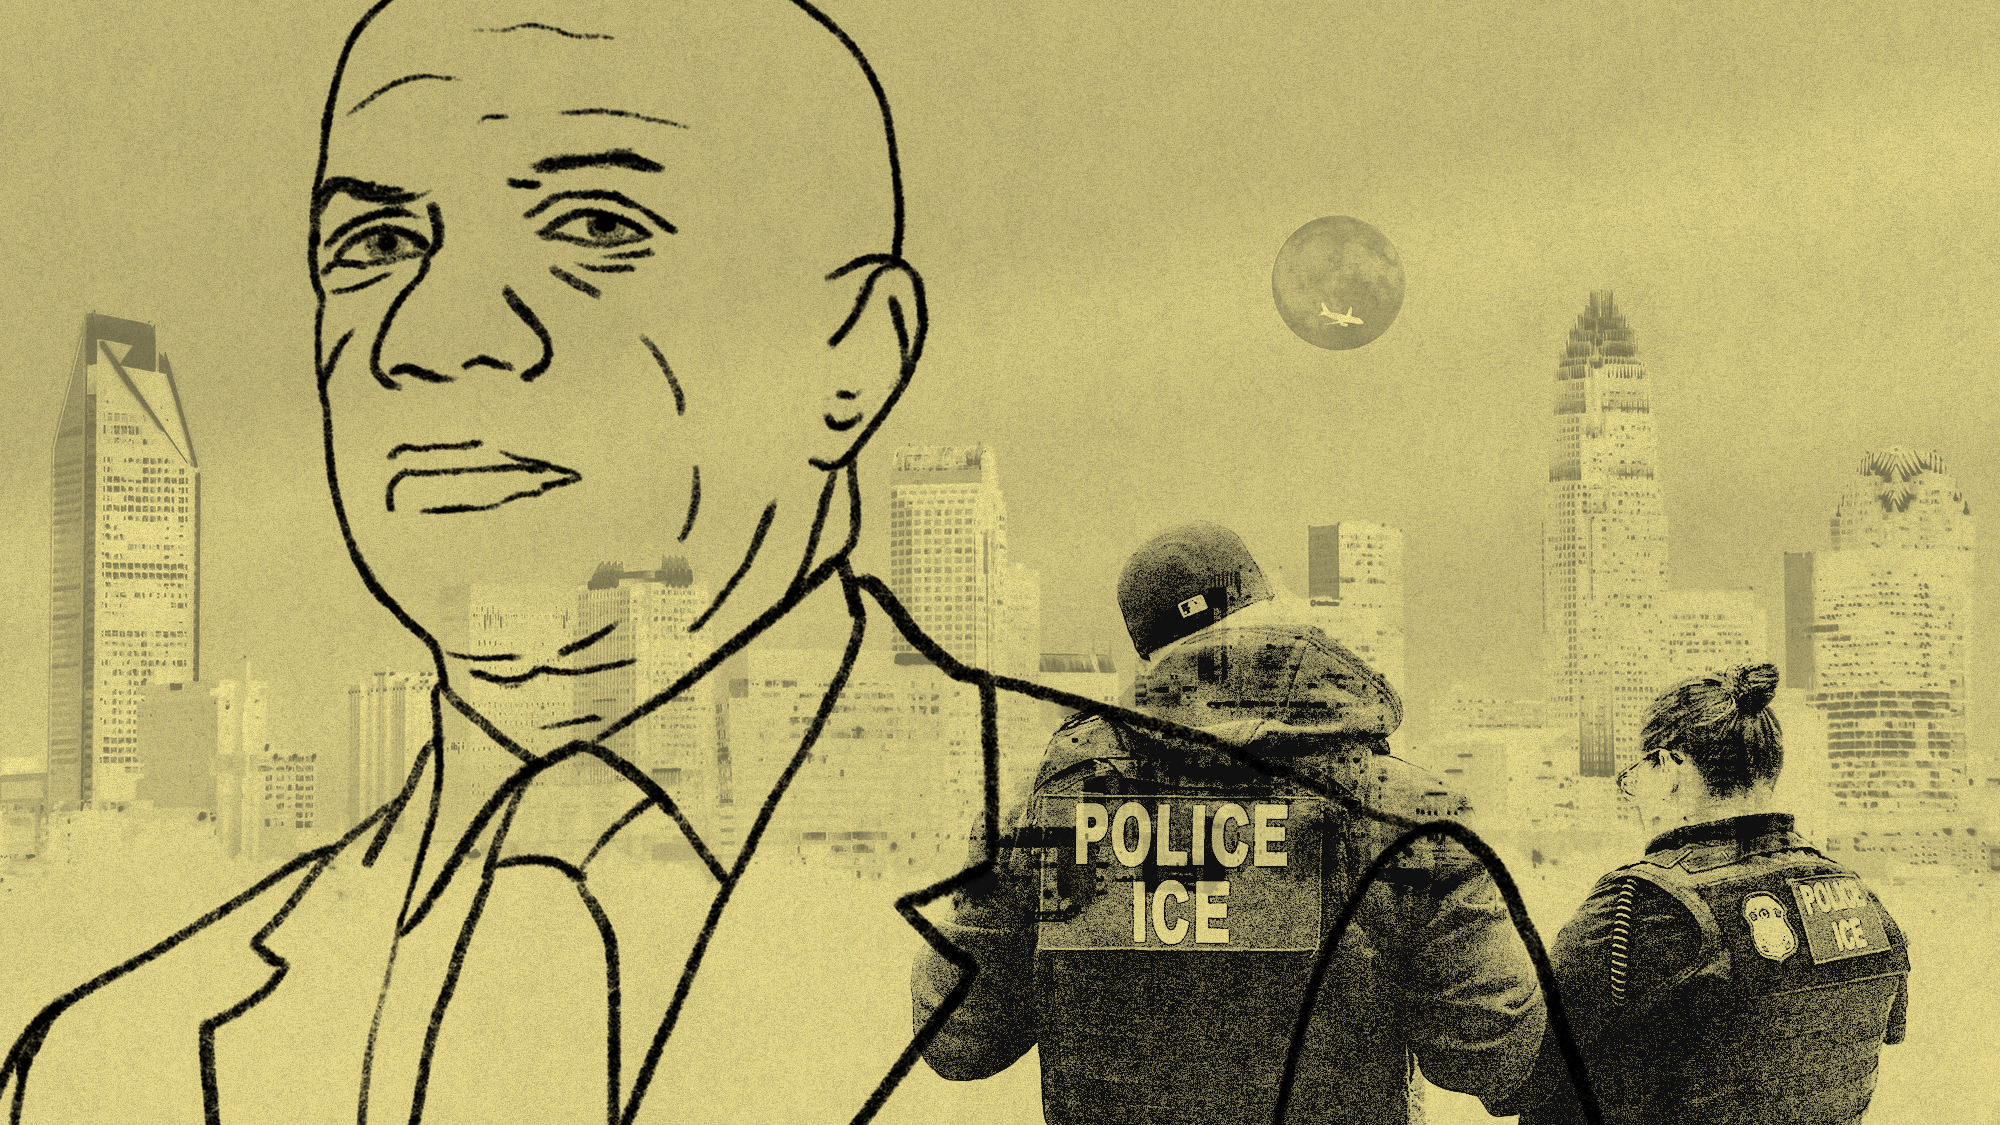 Garry McFadden: The New Sheriff in Town - The Atlantic